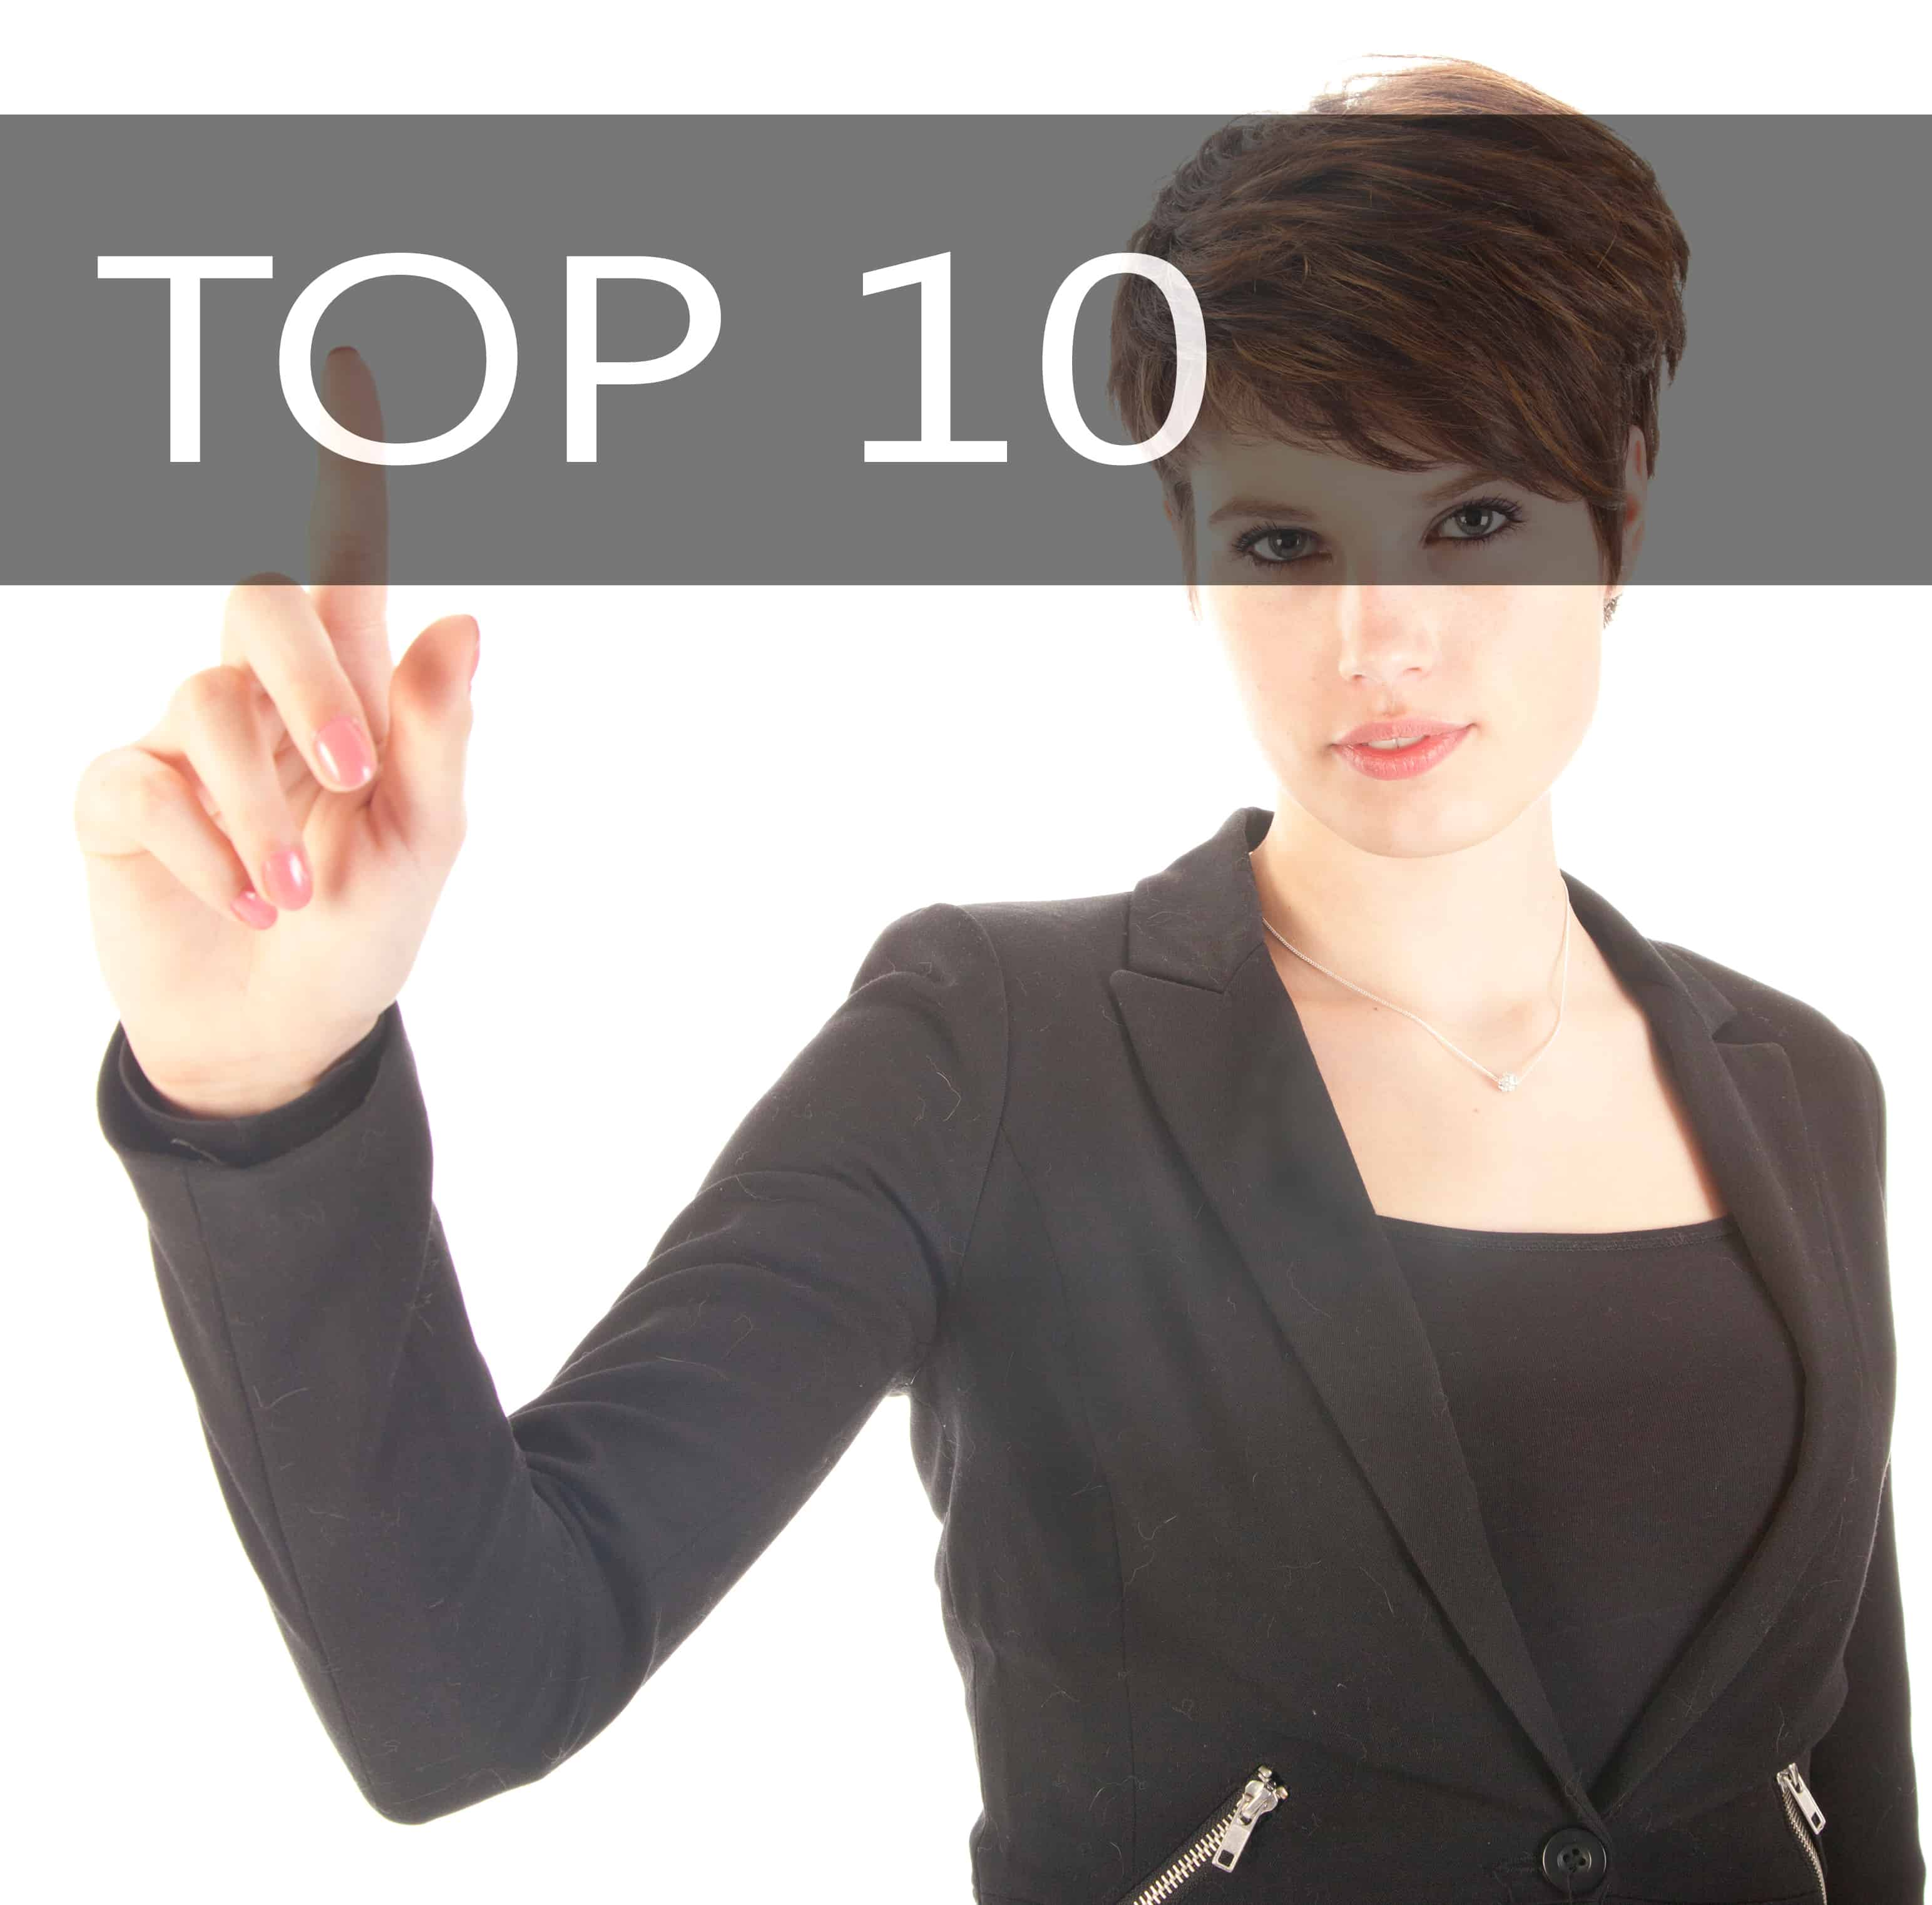 Top 10 Reasons to attend Summit